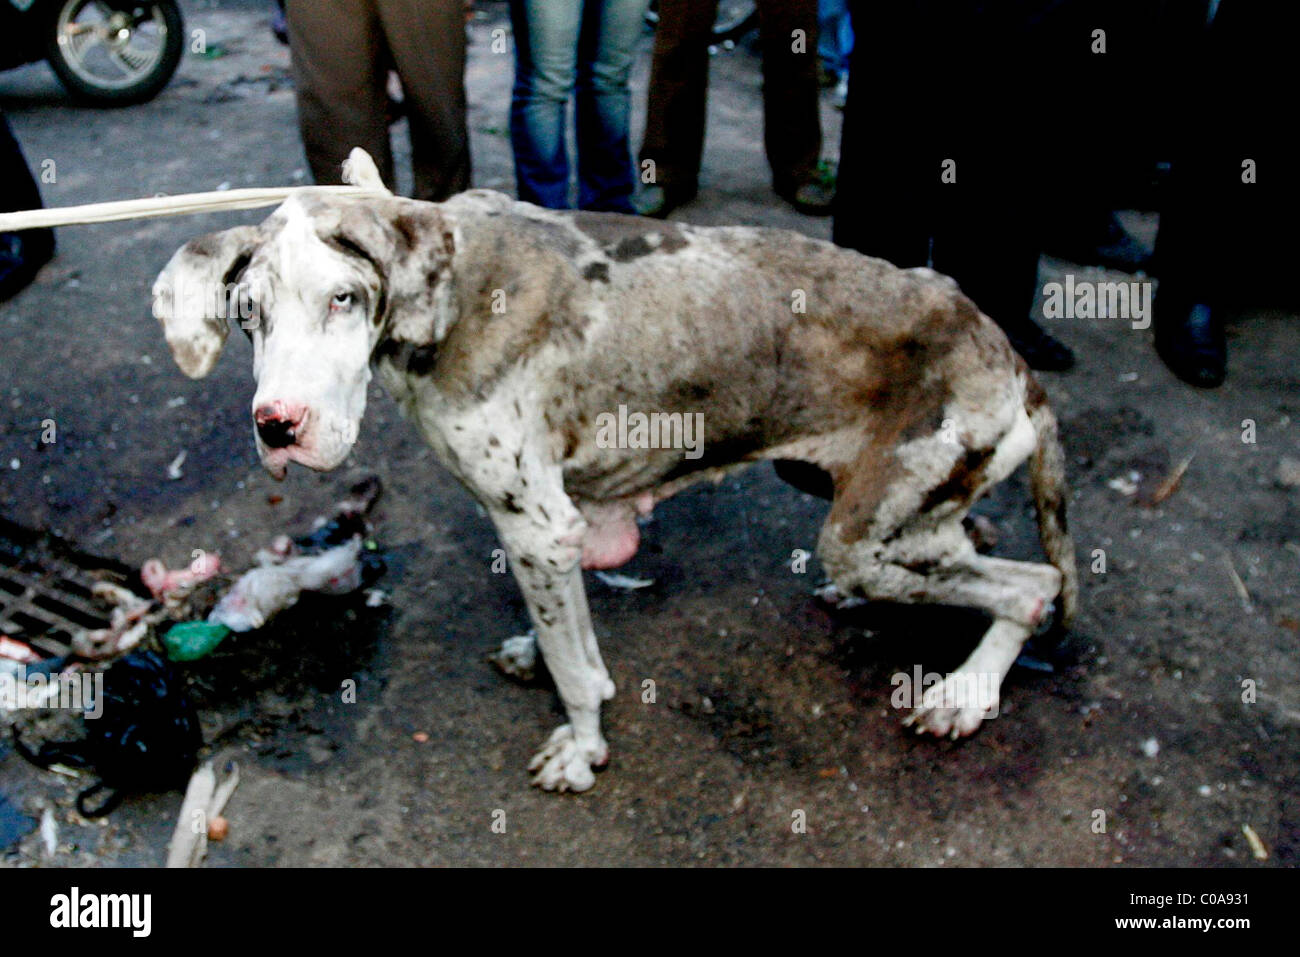 CHINA BLASTED AFTER DOG SLAUGHTER Animal-rights ... - photo#42